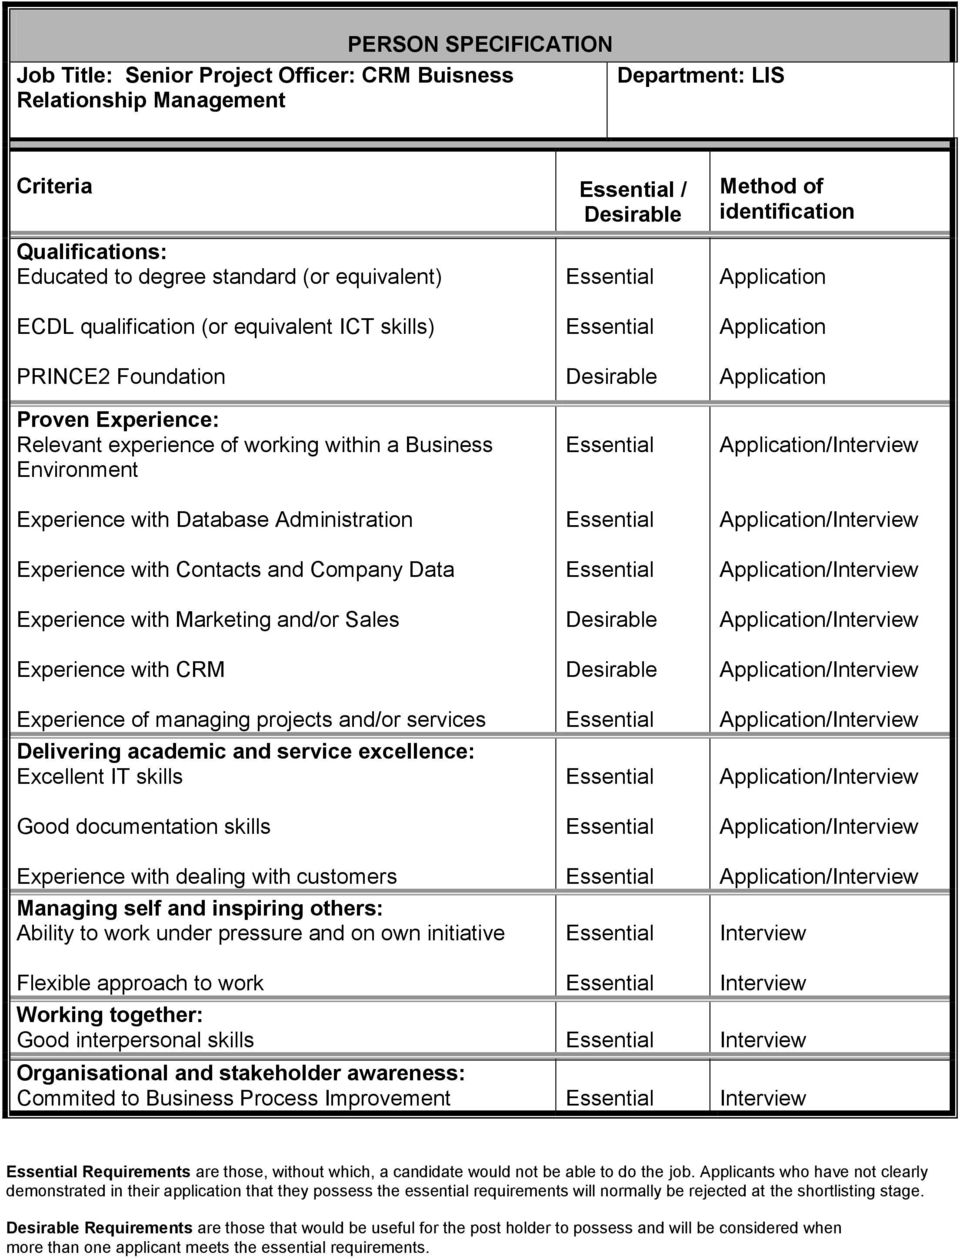 Database Administration Experience with Contacts and Company Data Experience with Marketing and/or Sales Experience with CRM Experience of managing projects and/or services Delivering academic and